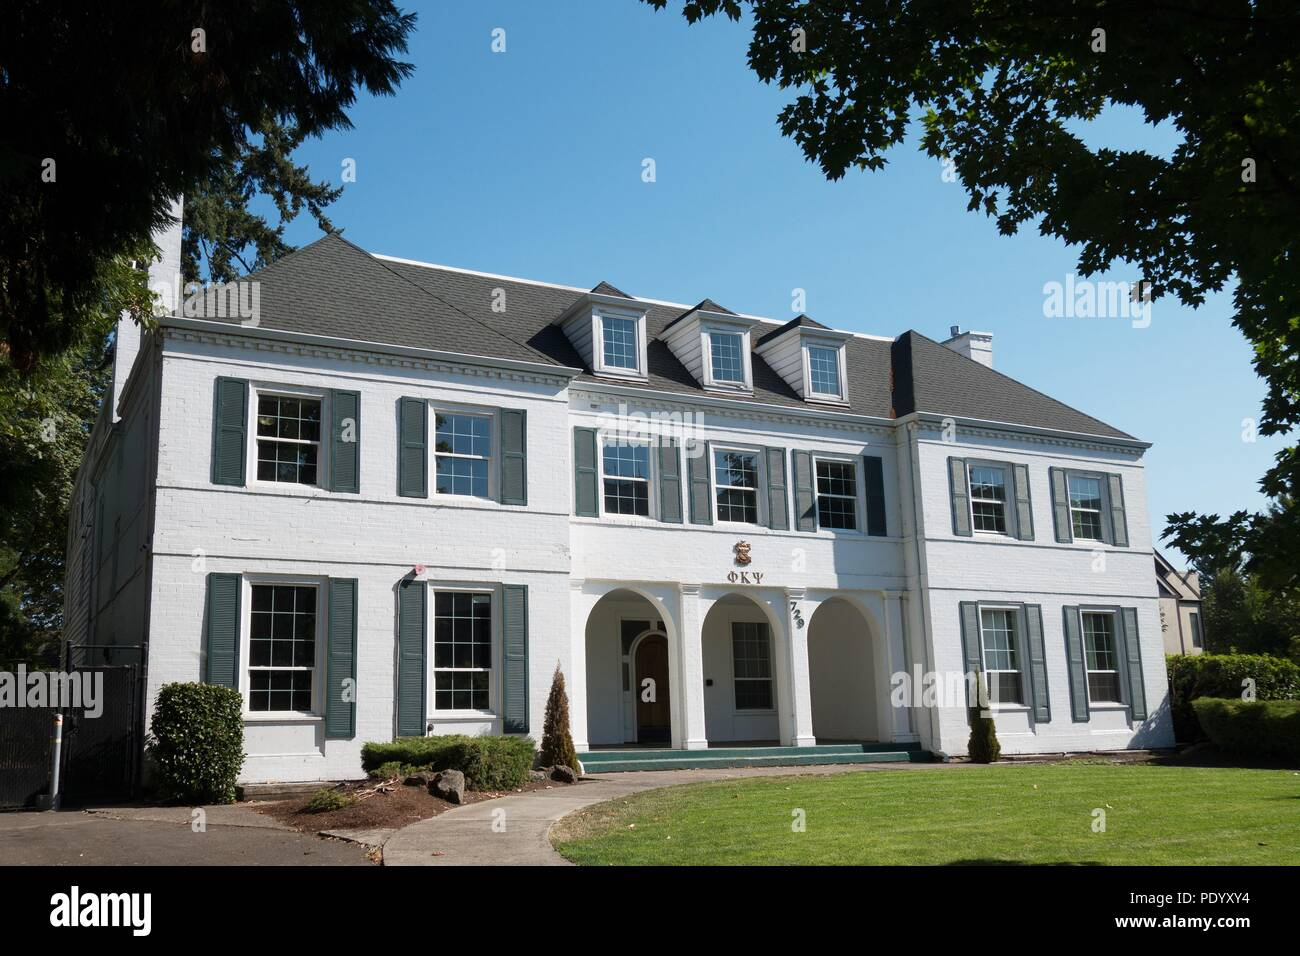 Omega house today, on the 40th anniversary of the release of the movie 'Animal House', in Eugene, Oregon, USA. - Stock Image